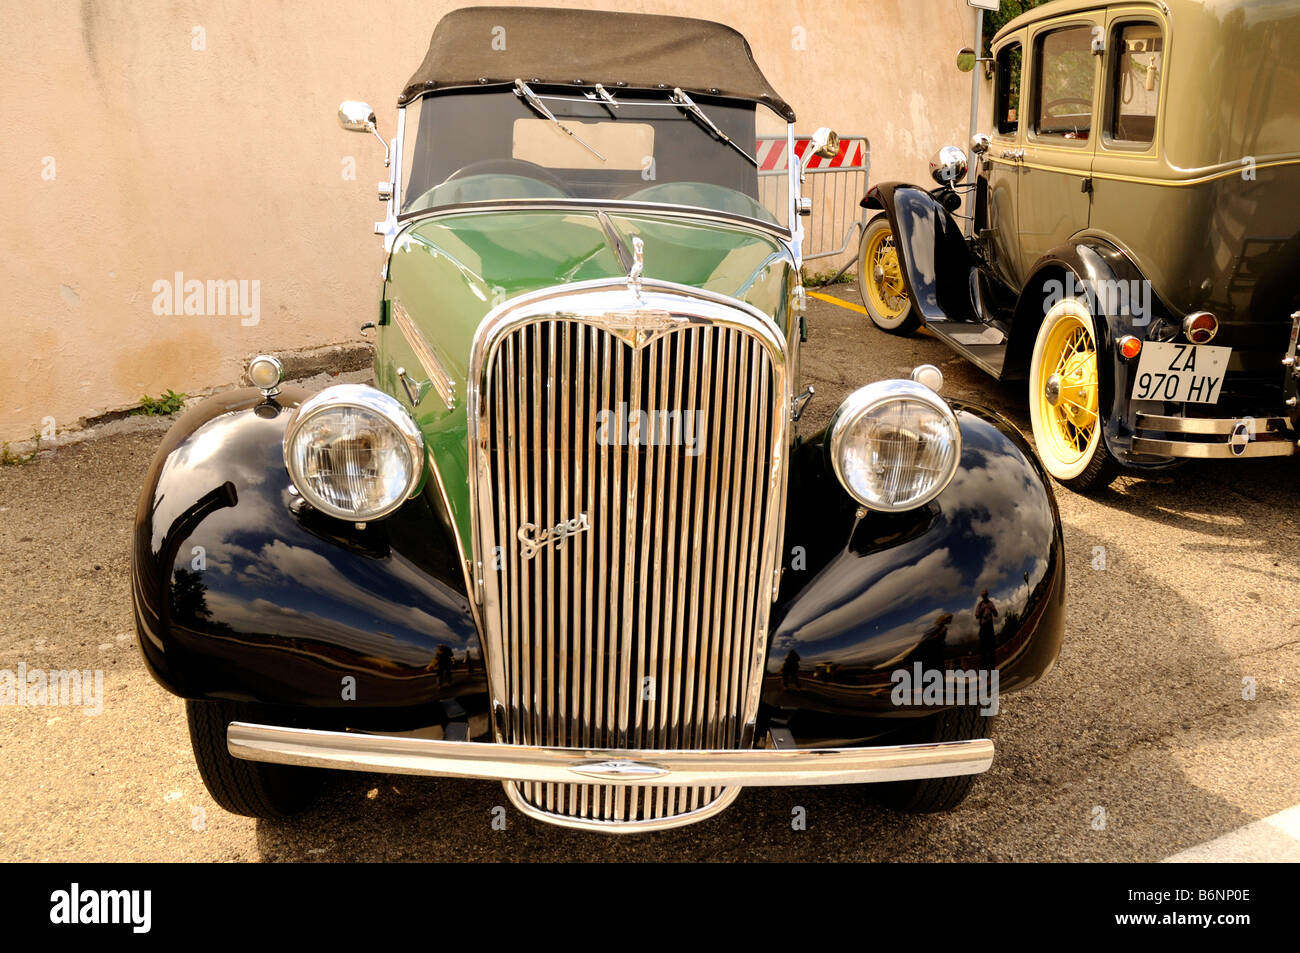 This is a detail from a Singer , a vintage car in Savoca Sicily ...